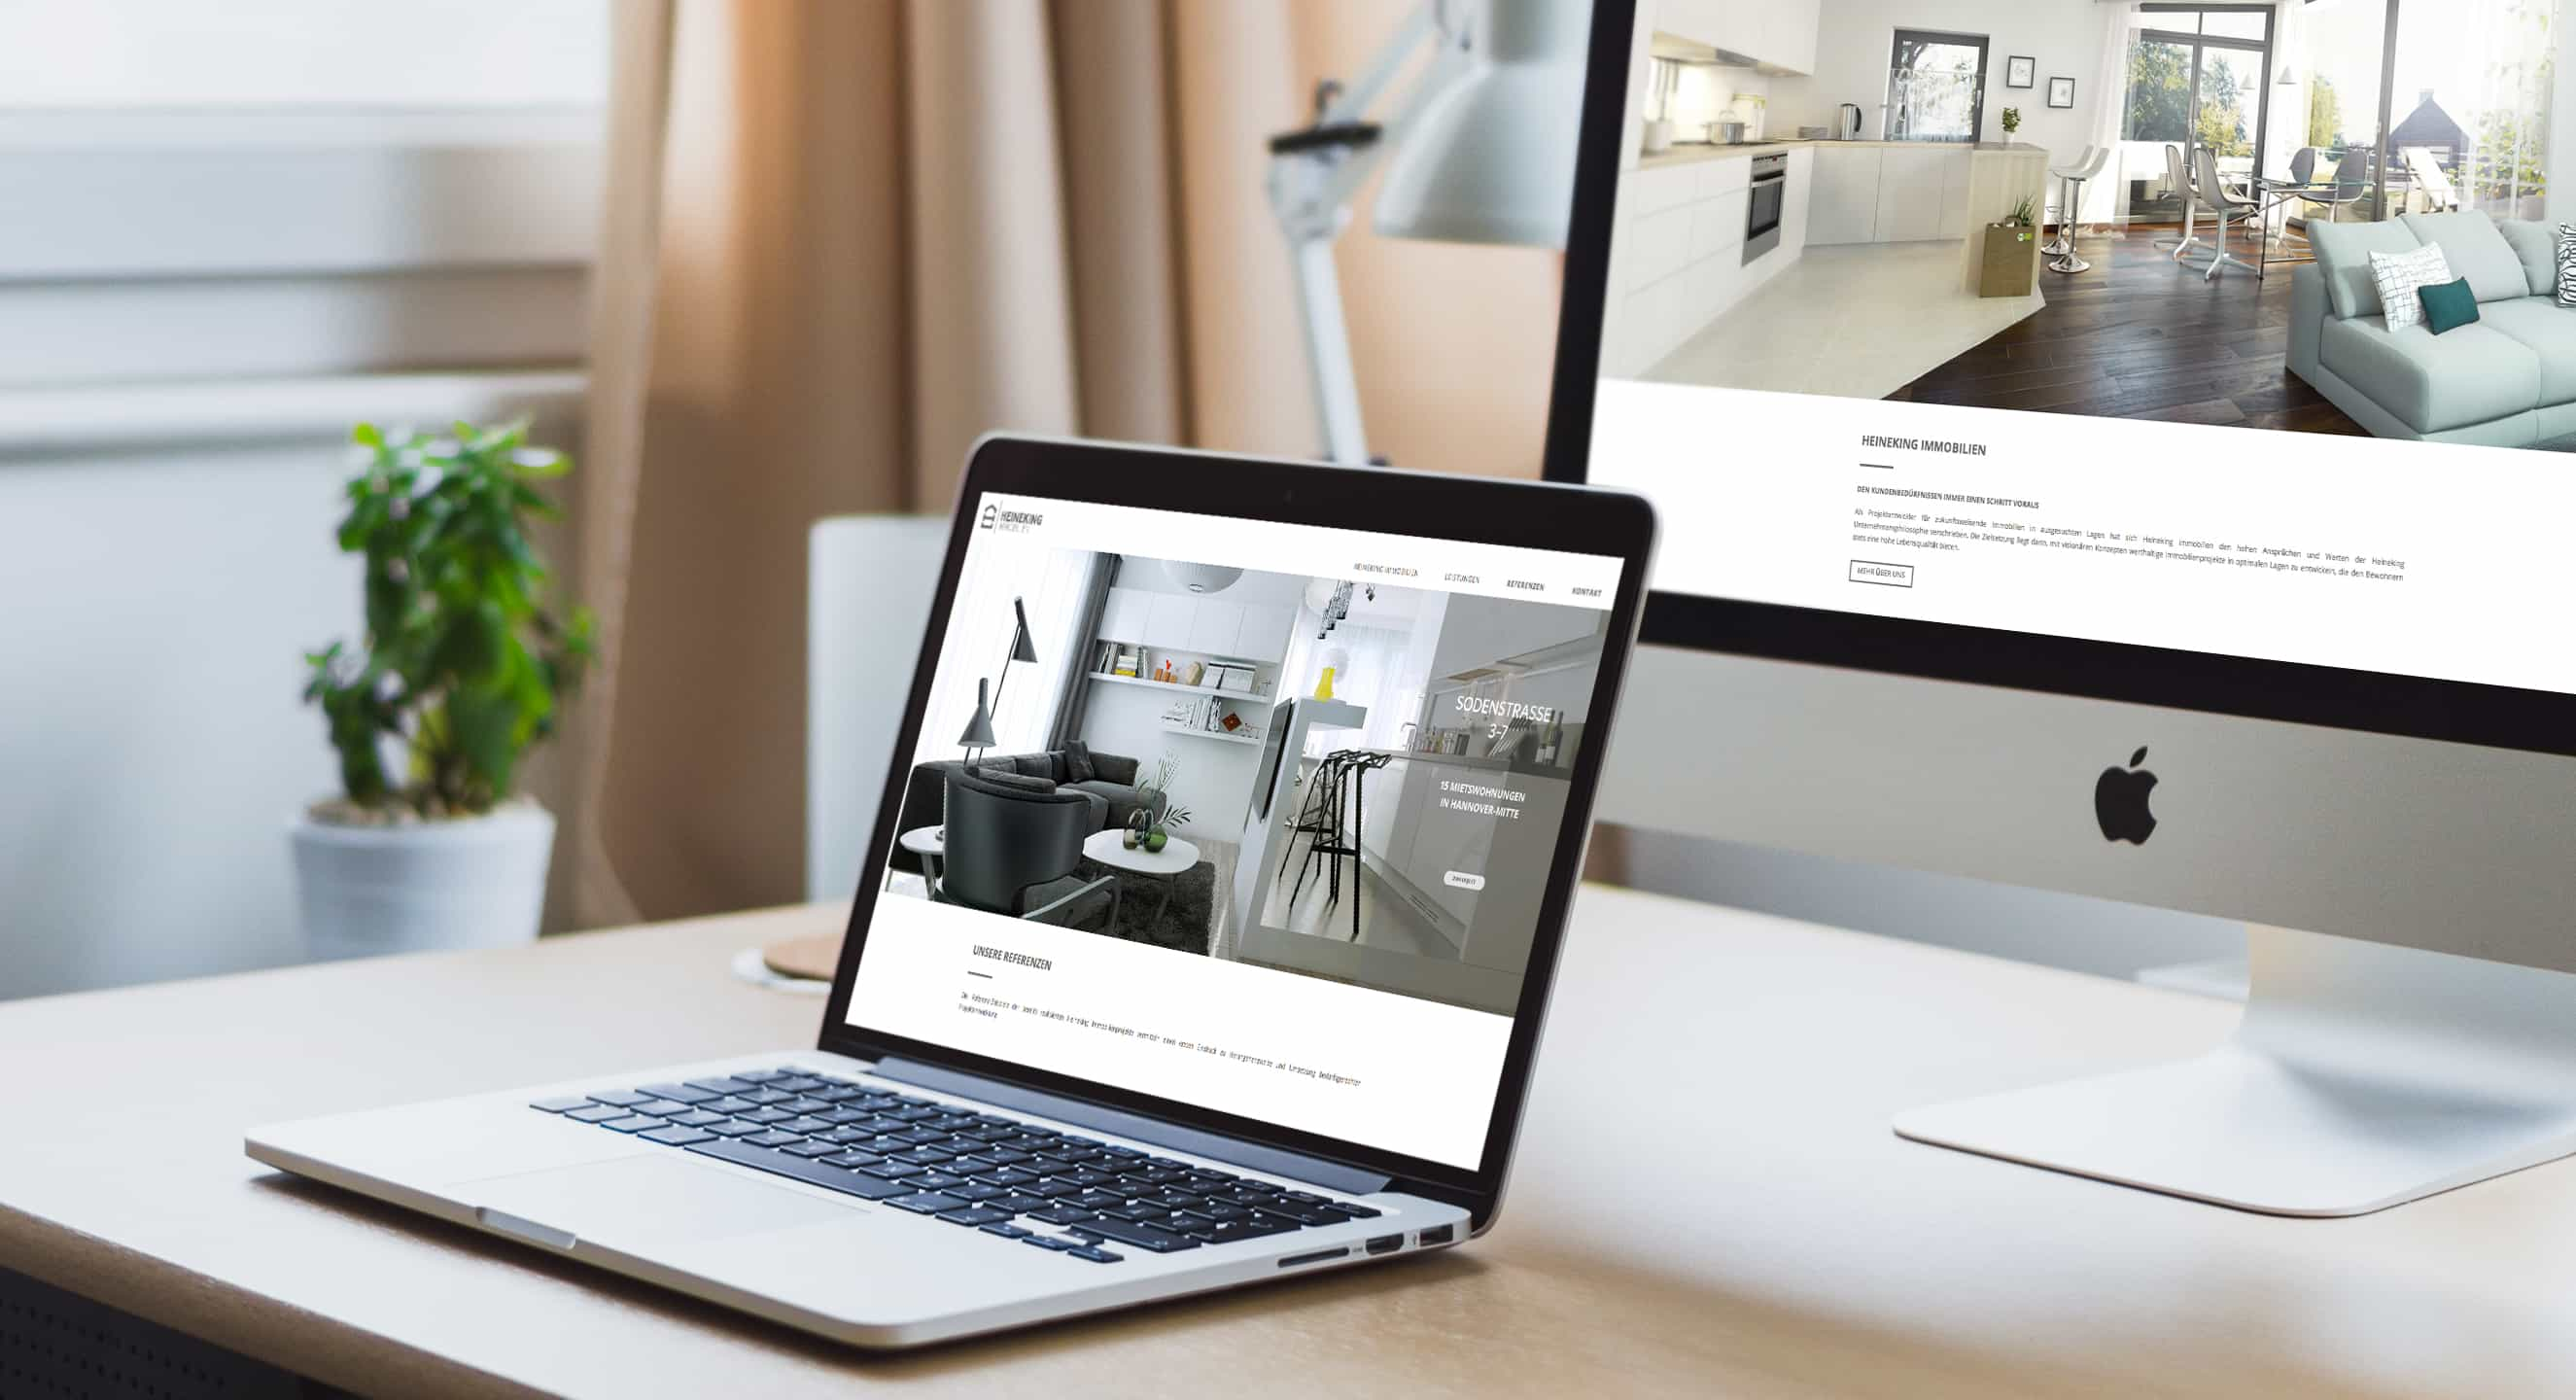 Immobilienmarketing Berlin - PlusQuadrat Projects - Heineking Immobilien - Website - Design - Programmierung - iMac - MacBook